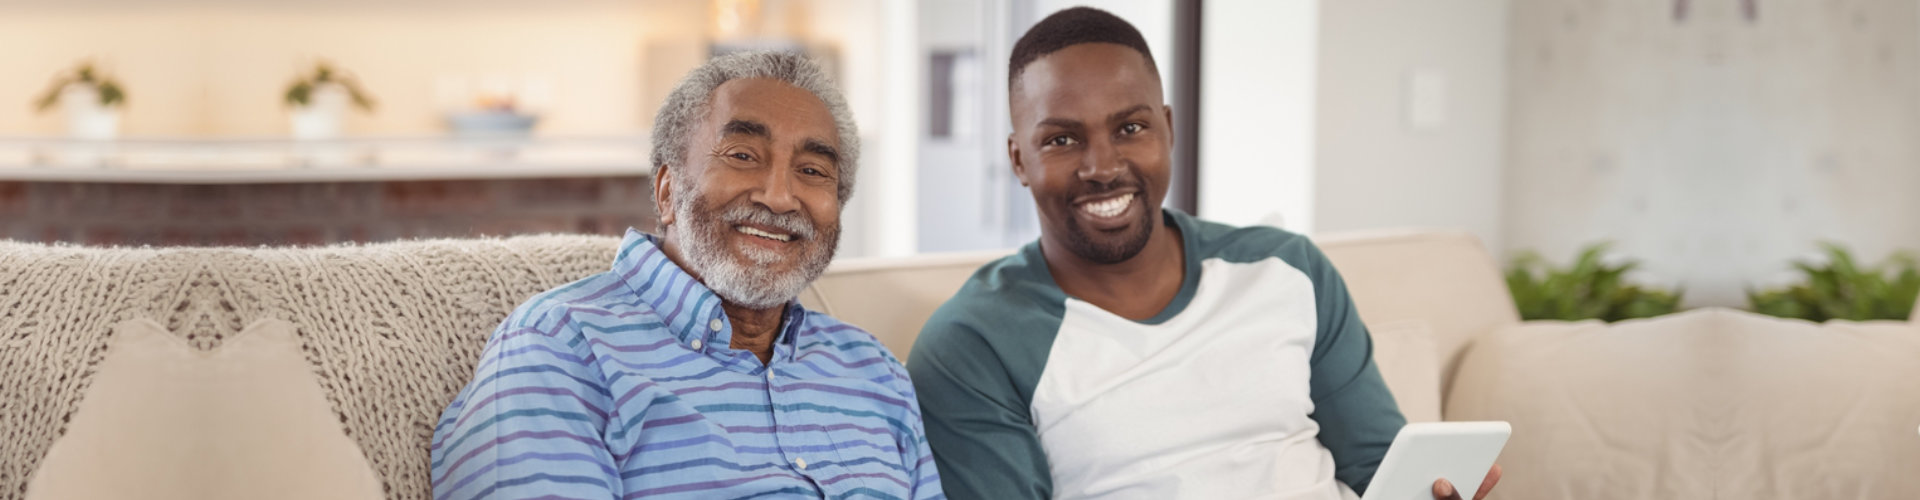 old man and caregiver smiling